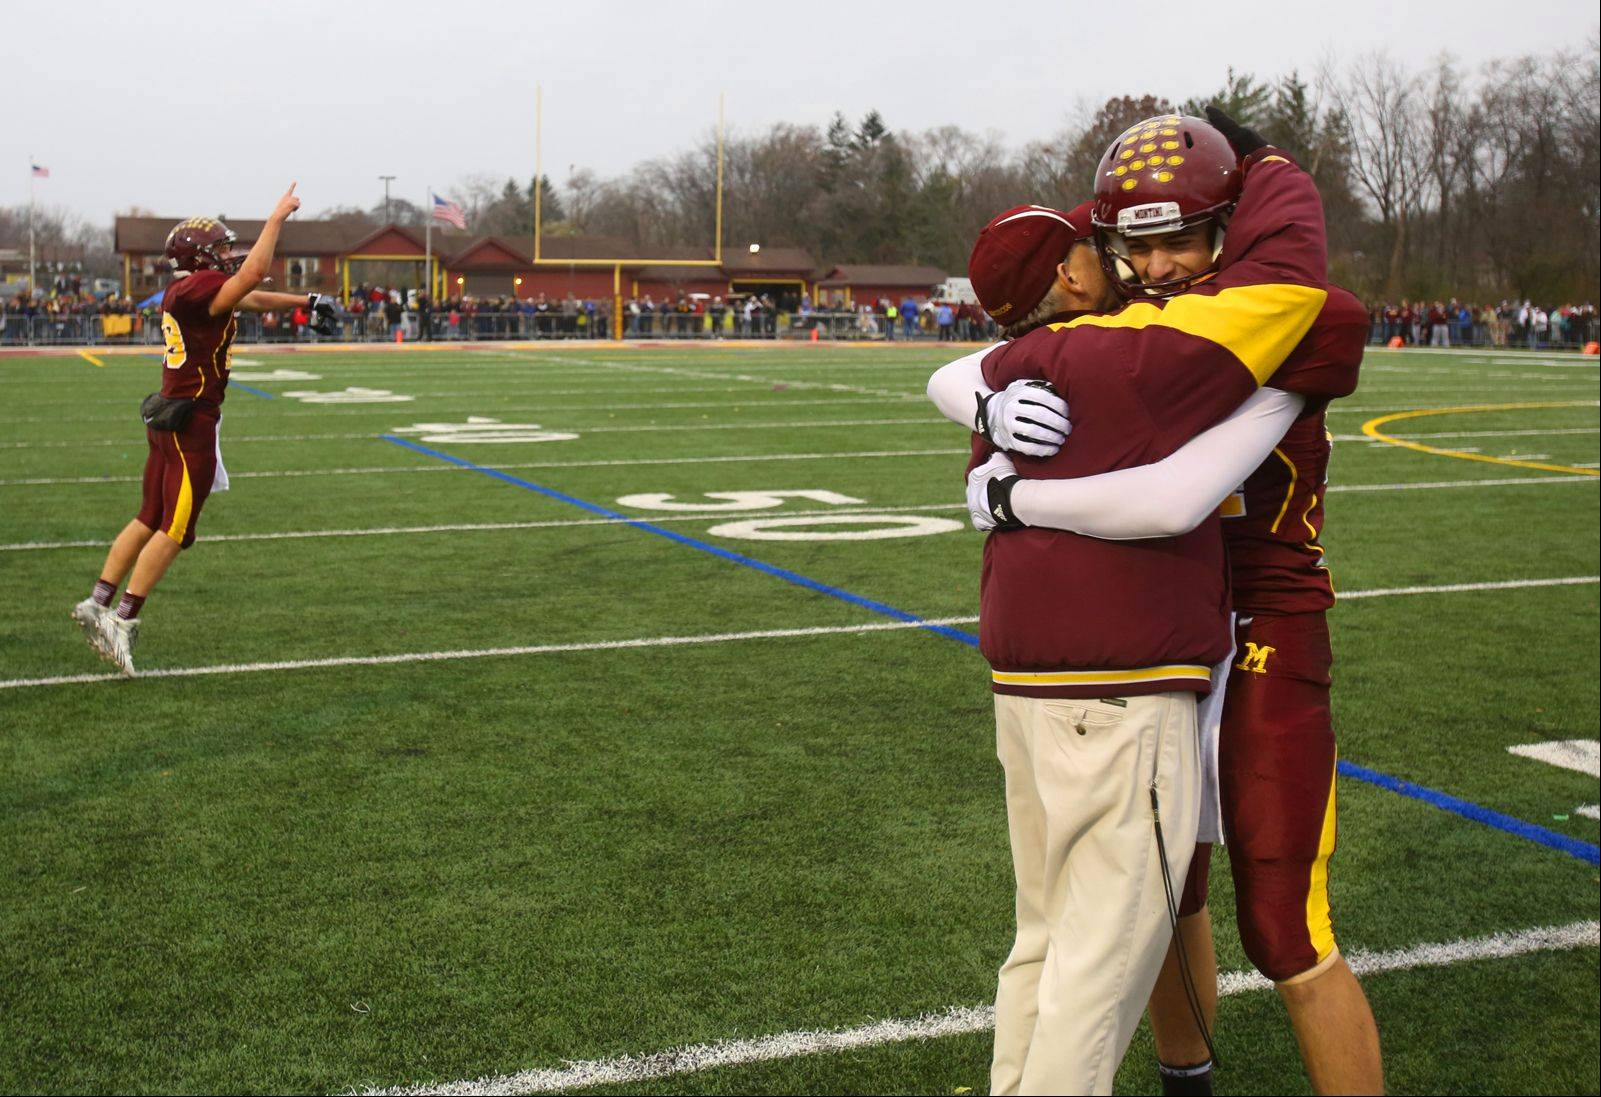 Montini Catholic's Stephen Dennis is congratulated by head coach Chris Andriano after the game. Dennis caught a deflected pass to score the game winning touchdown against Joliet Catholic.